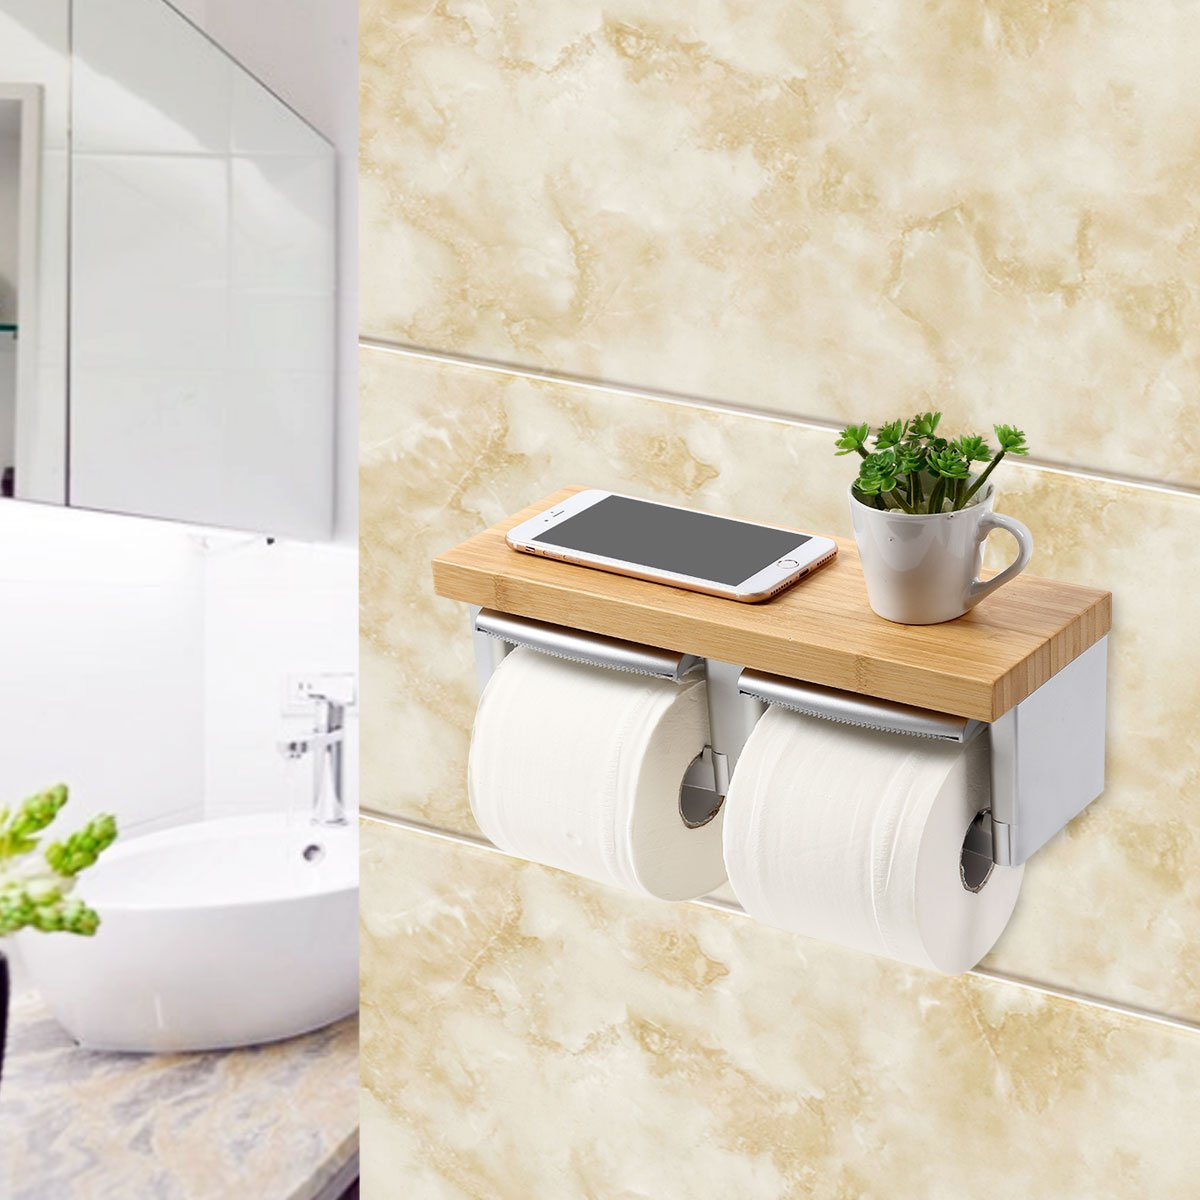 MEIBEI Toilet Paper Holder with Shelf, Double Toilet Roll Holder, Wall Mount Roll Paper Hanger with Mobile Phone Storage